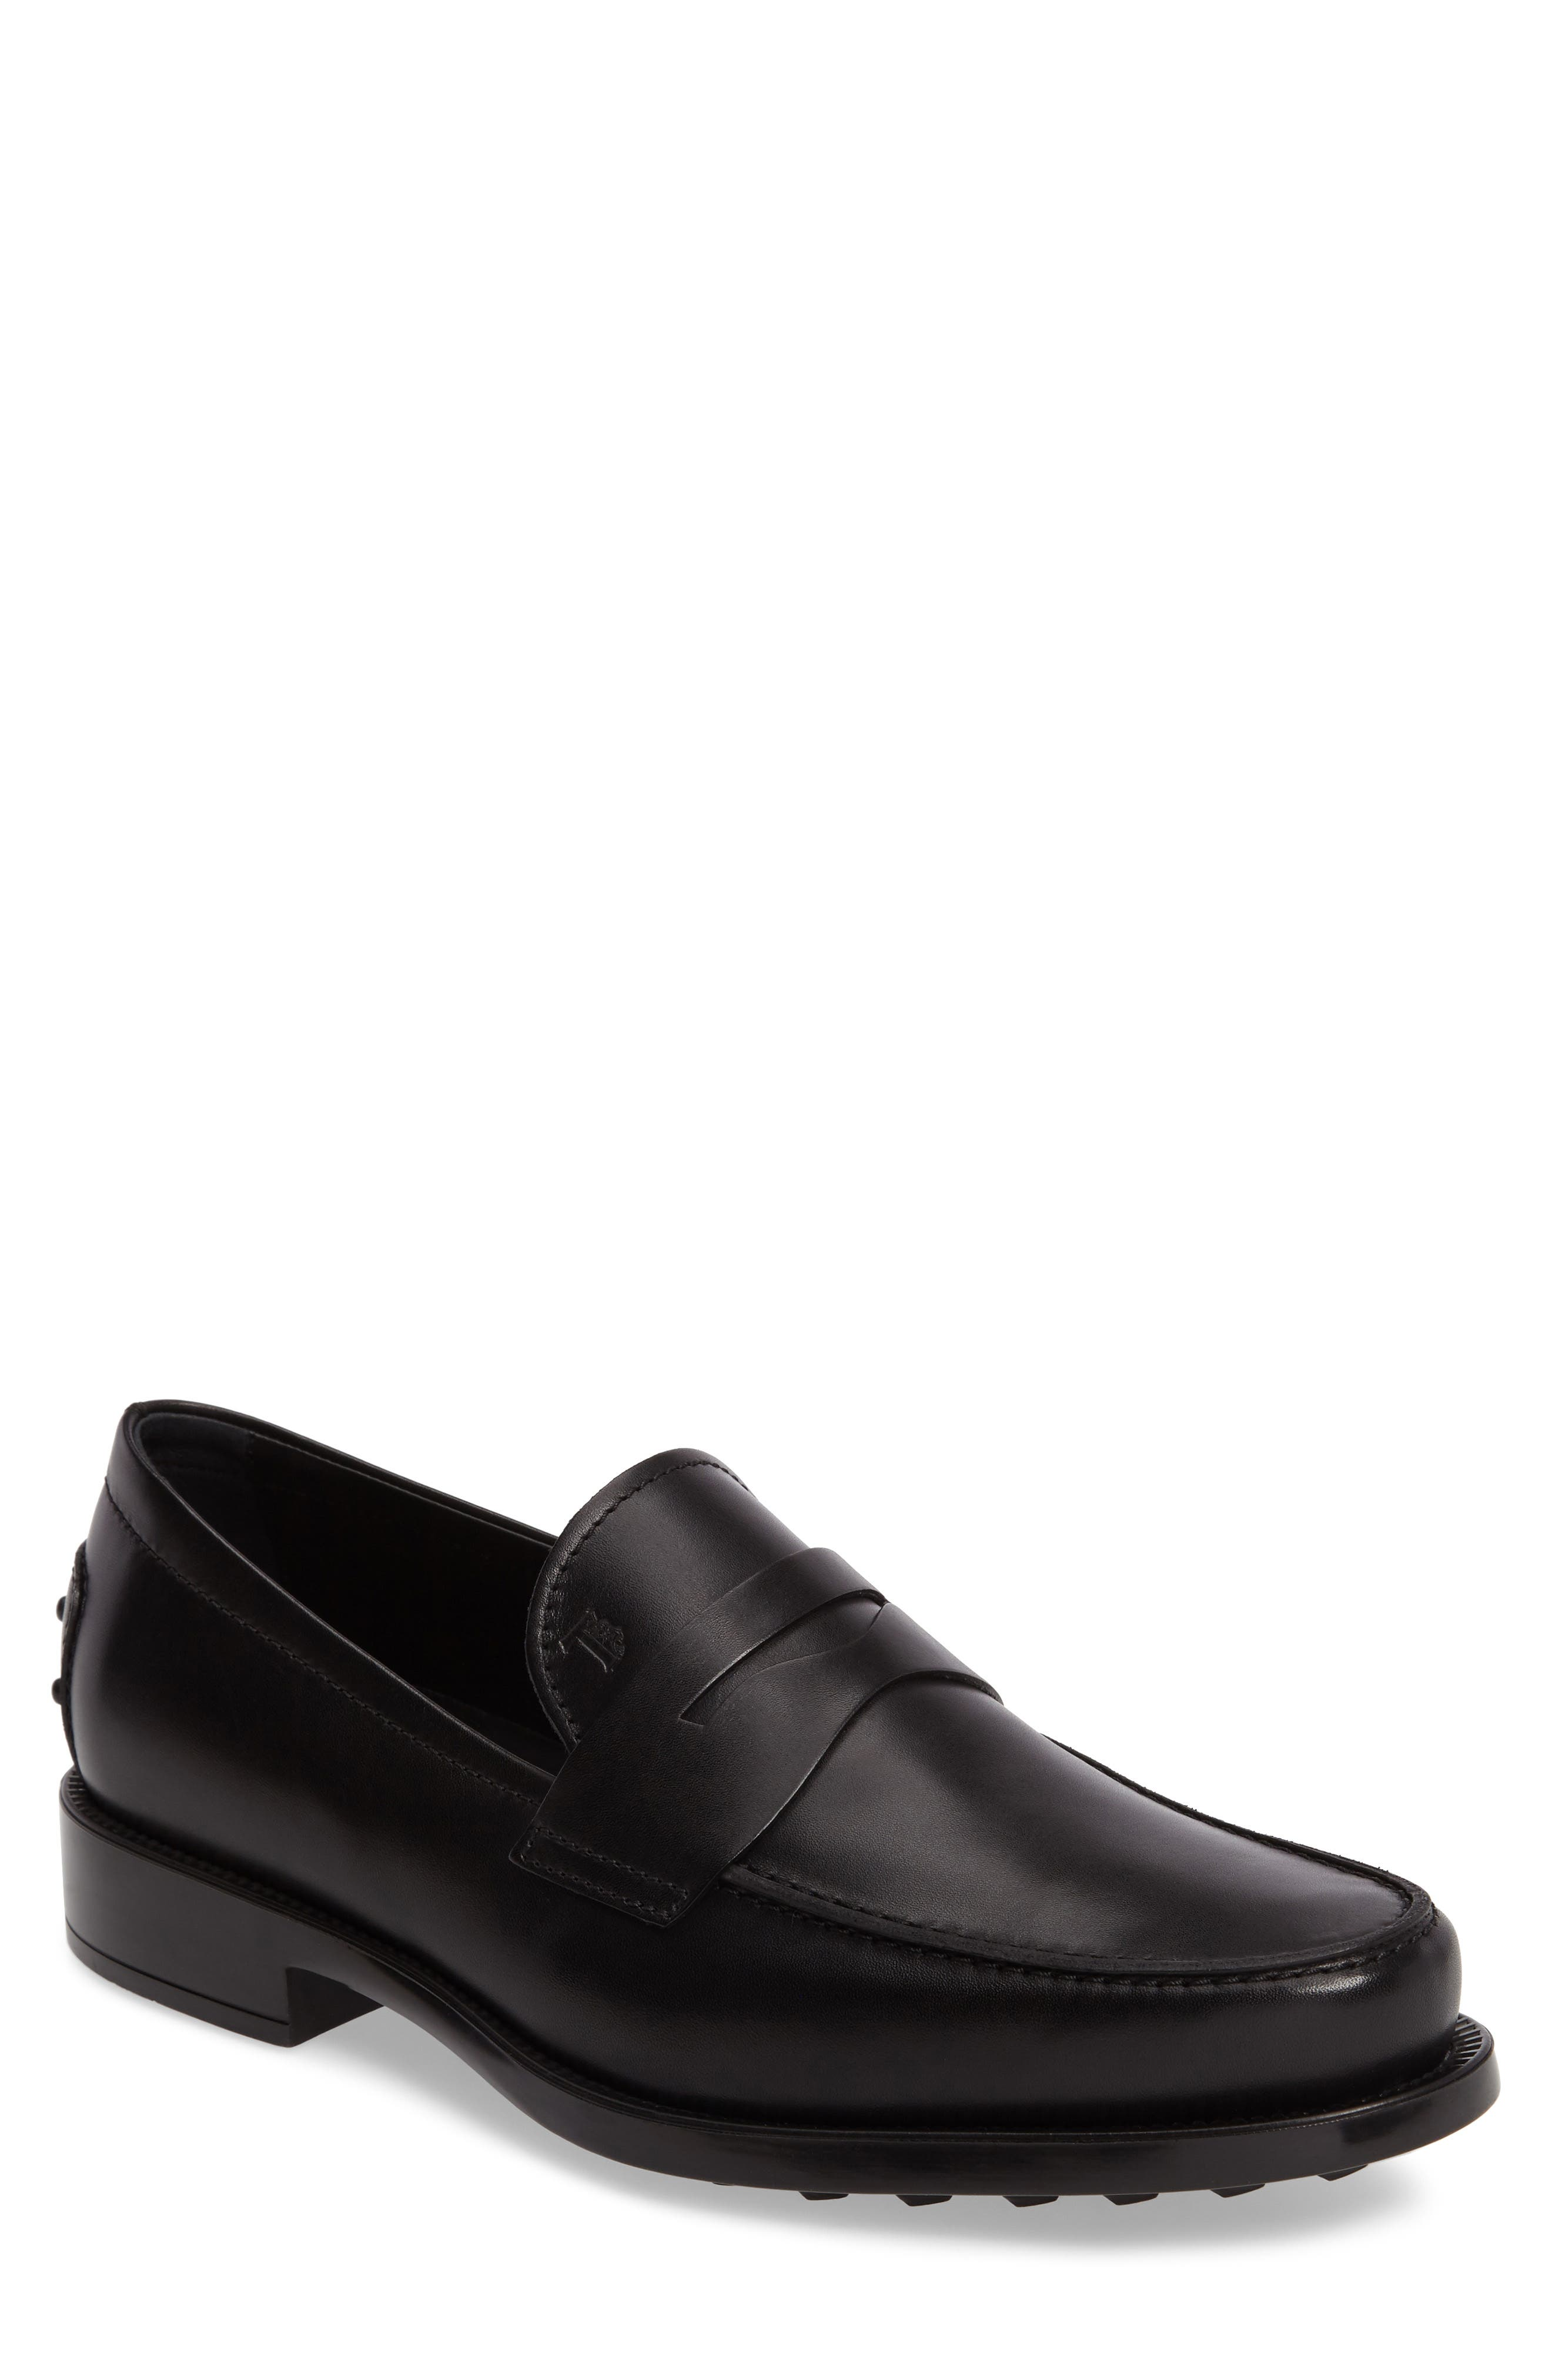 'Boston' Penny Loafer,                         Main,                         color, Black Leather